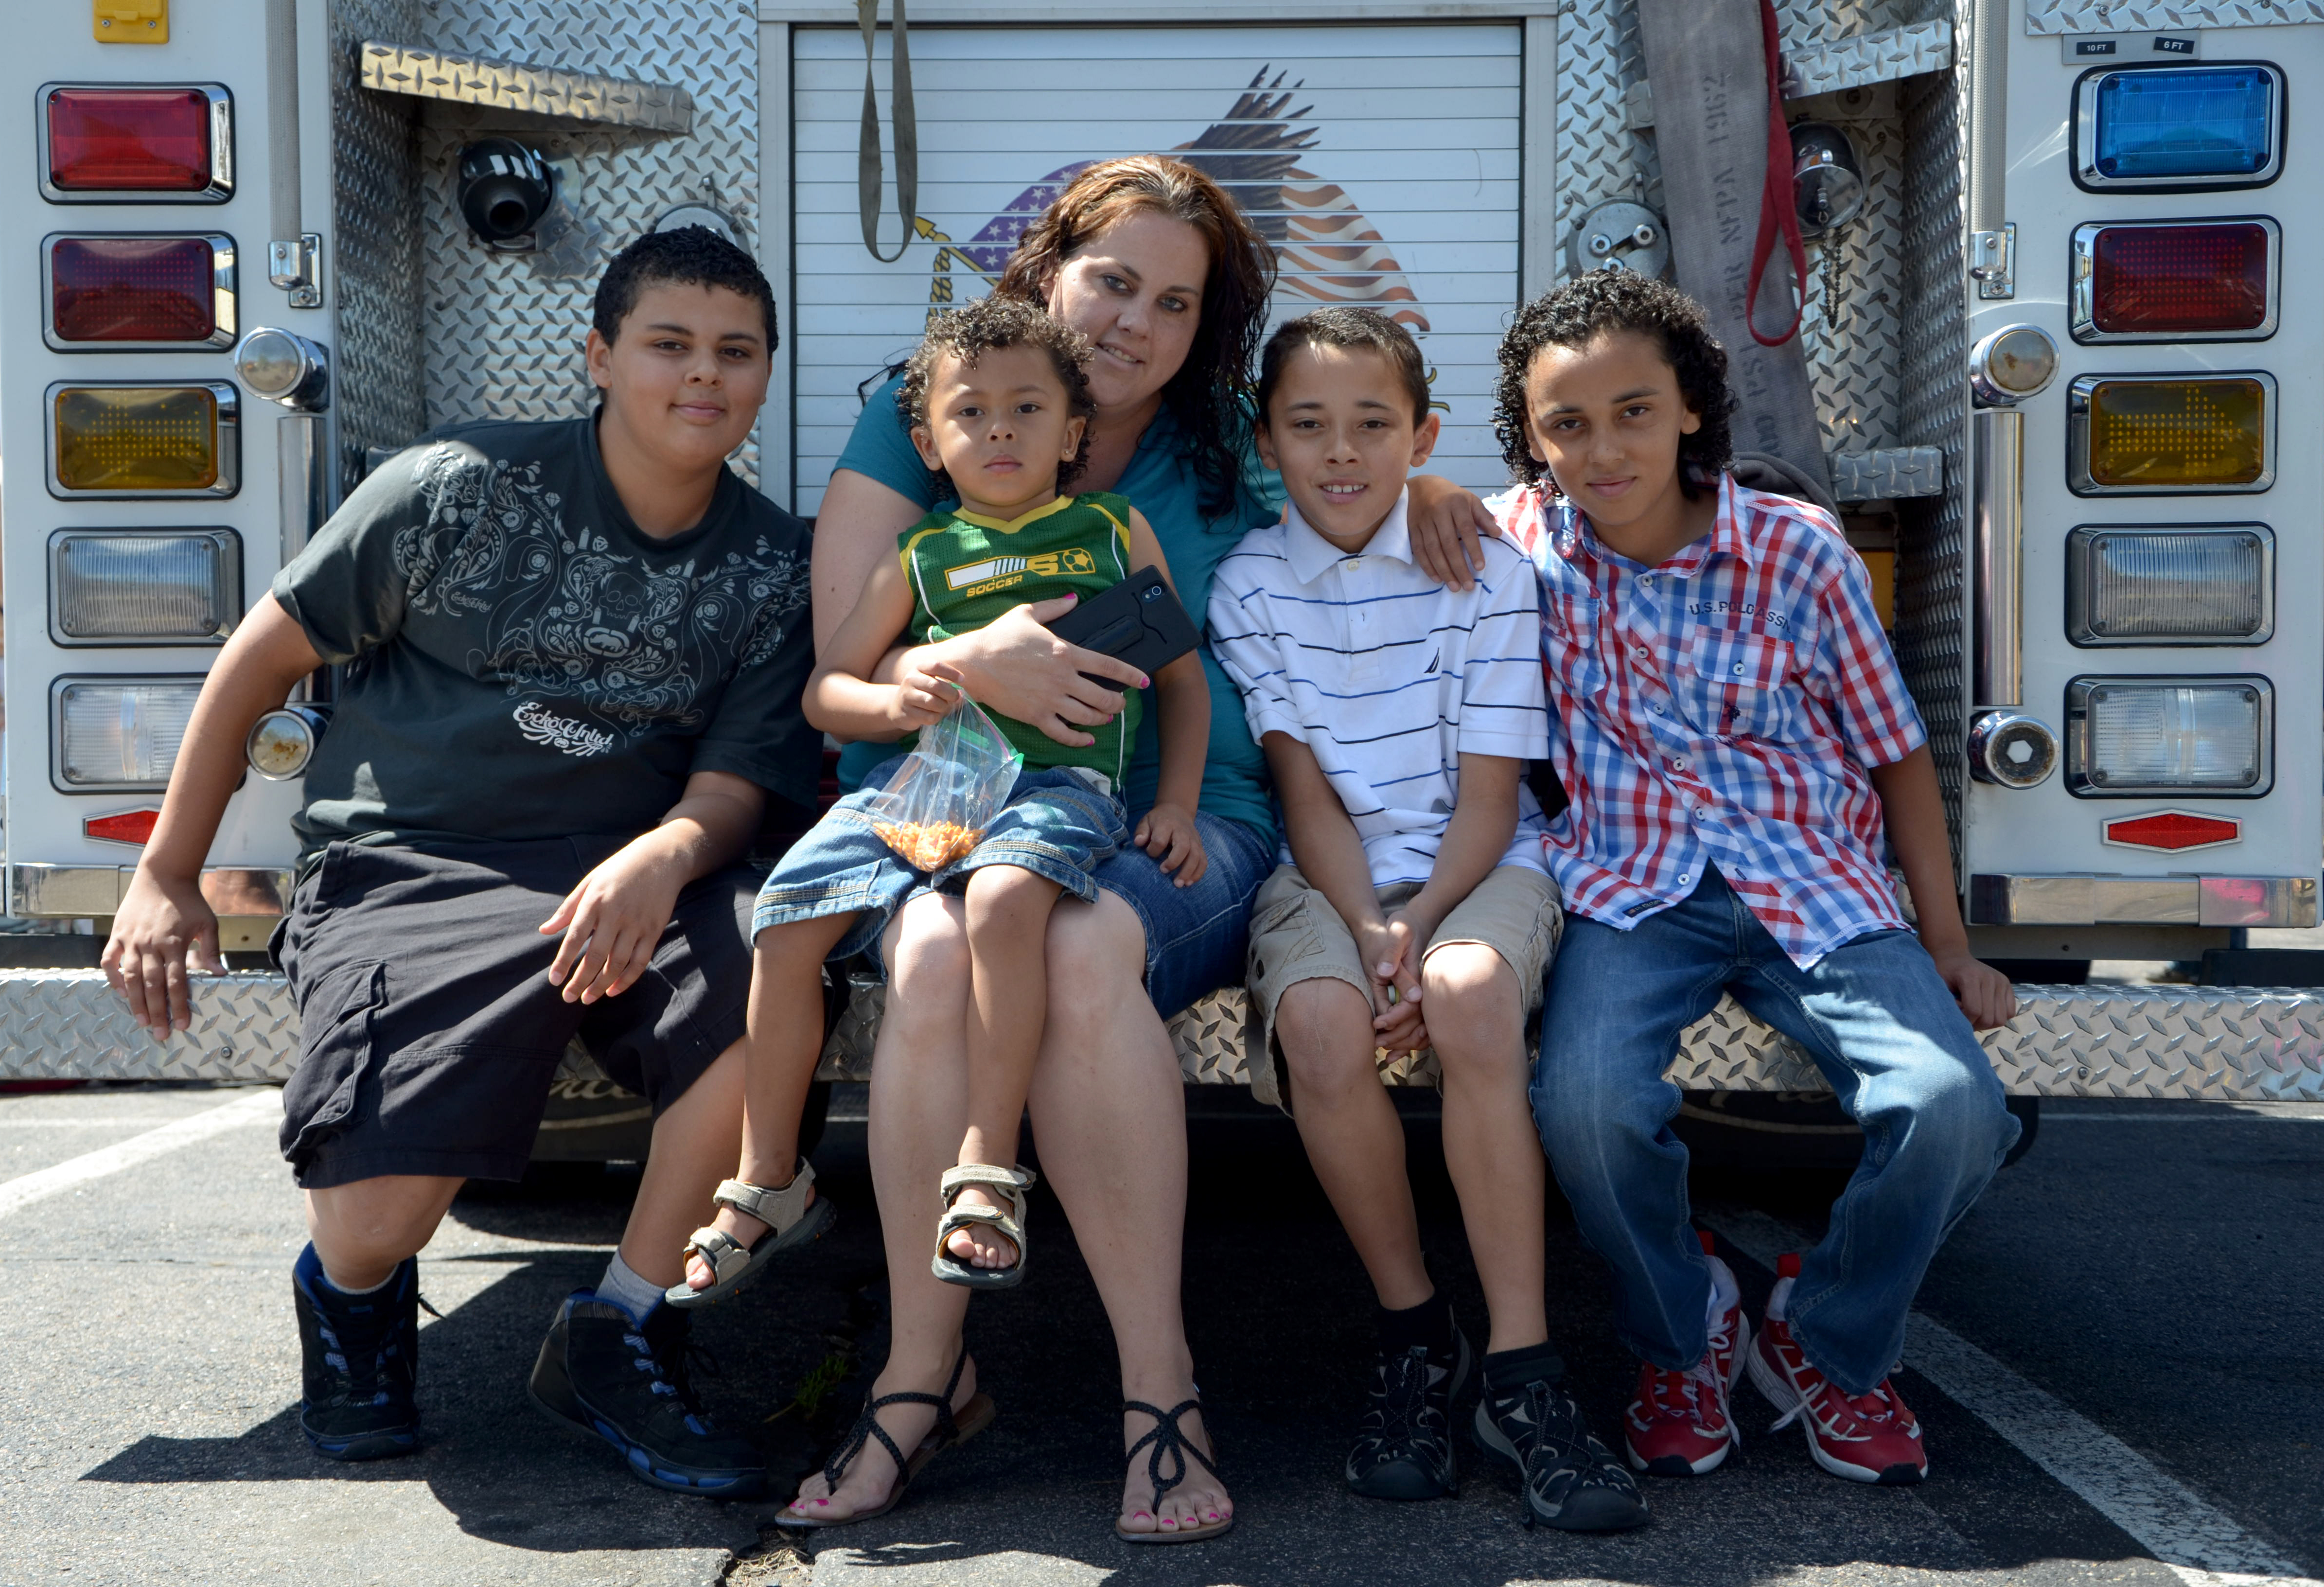 Photo: Katrina Haselgren and her family, kids in poverty, stress and the brain